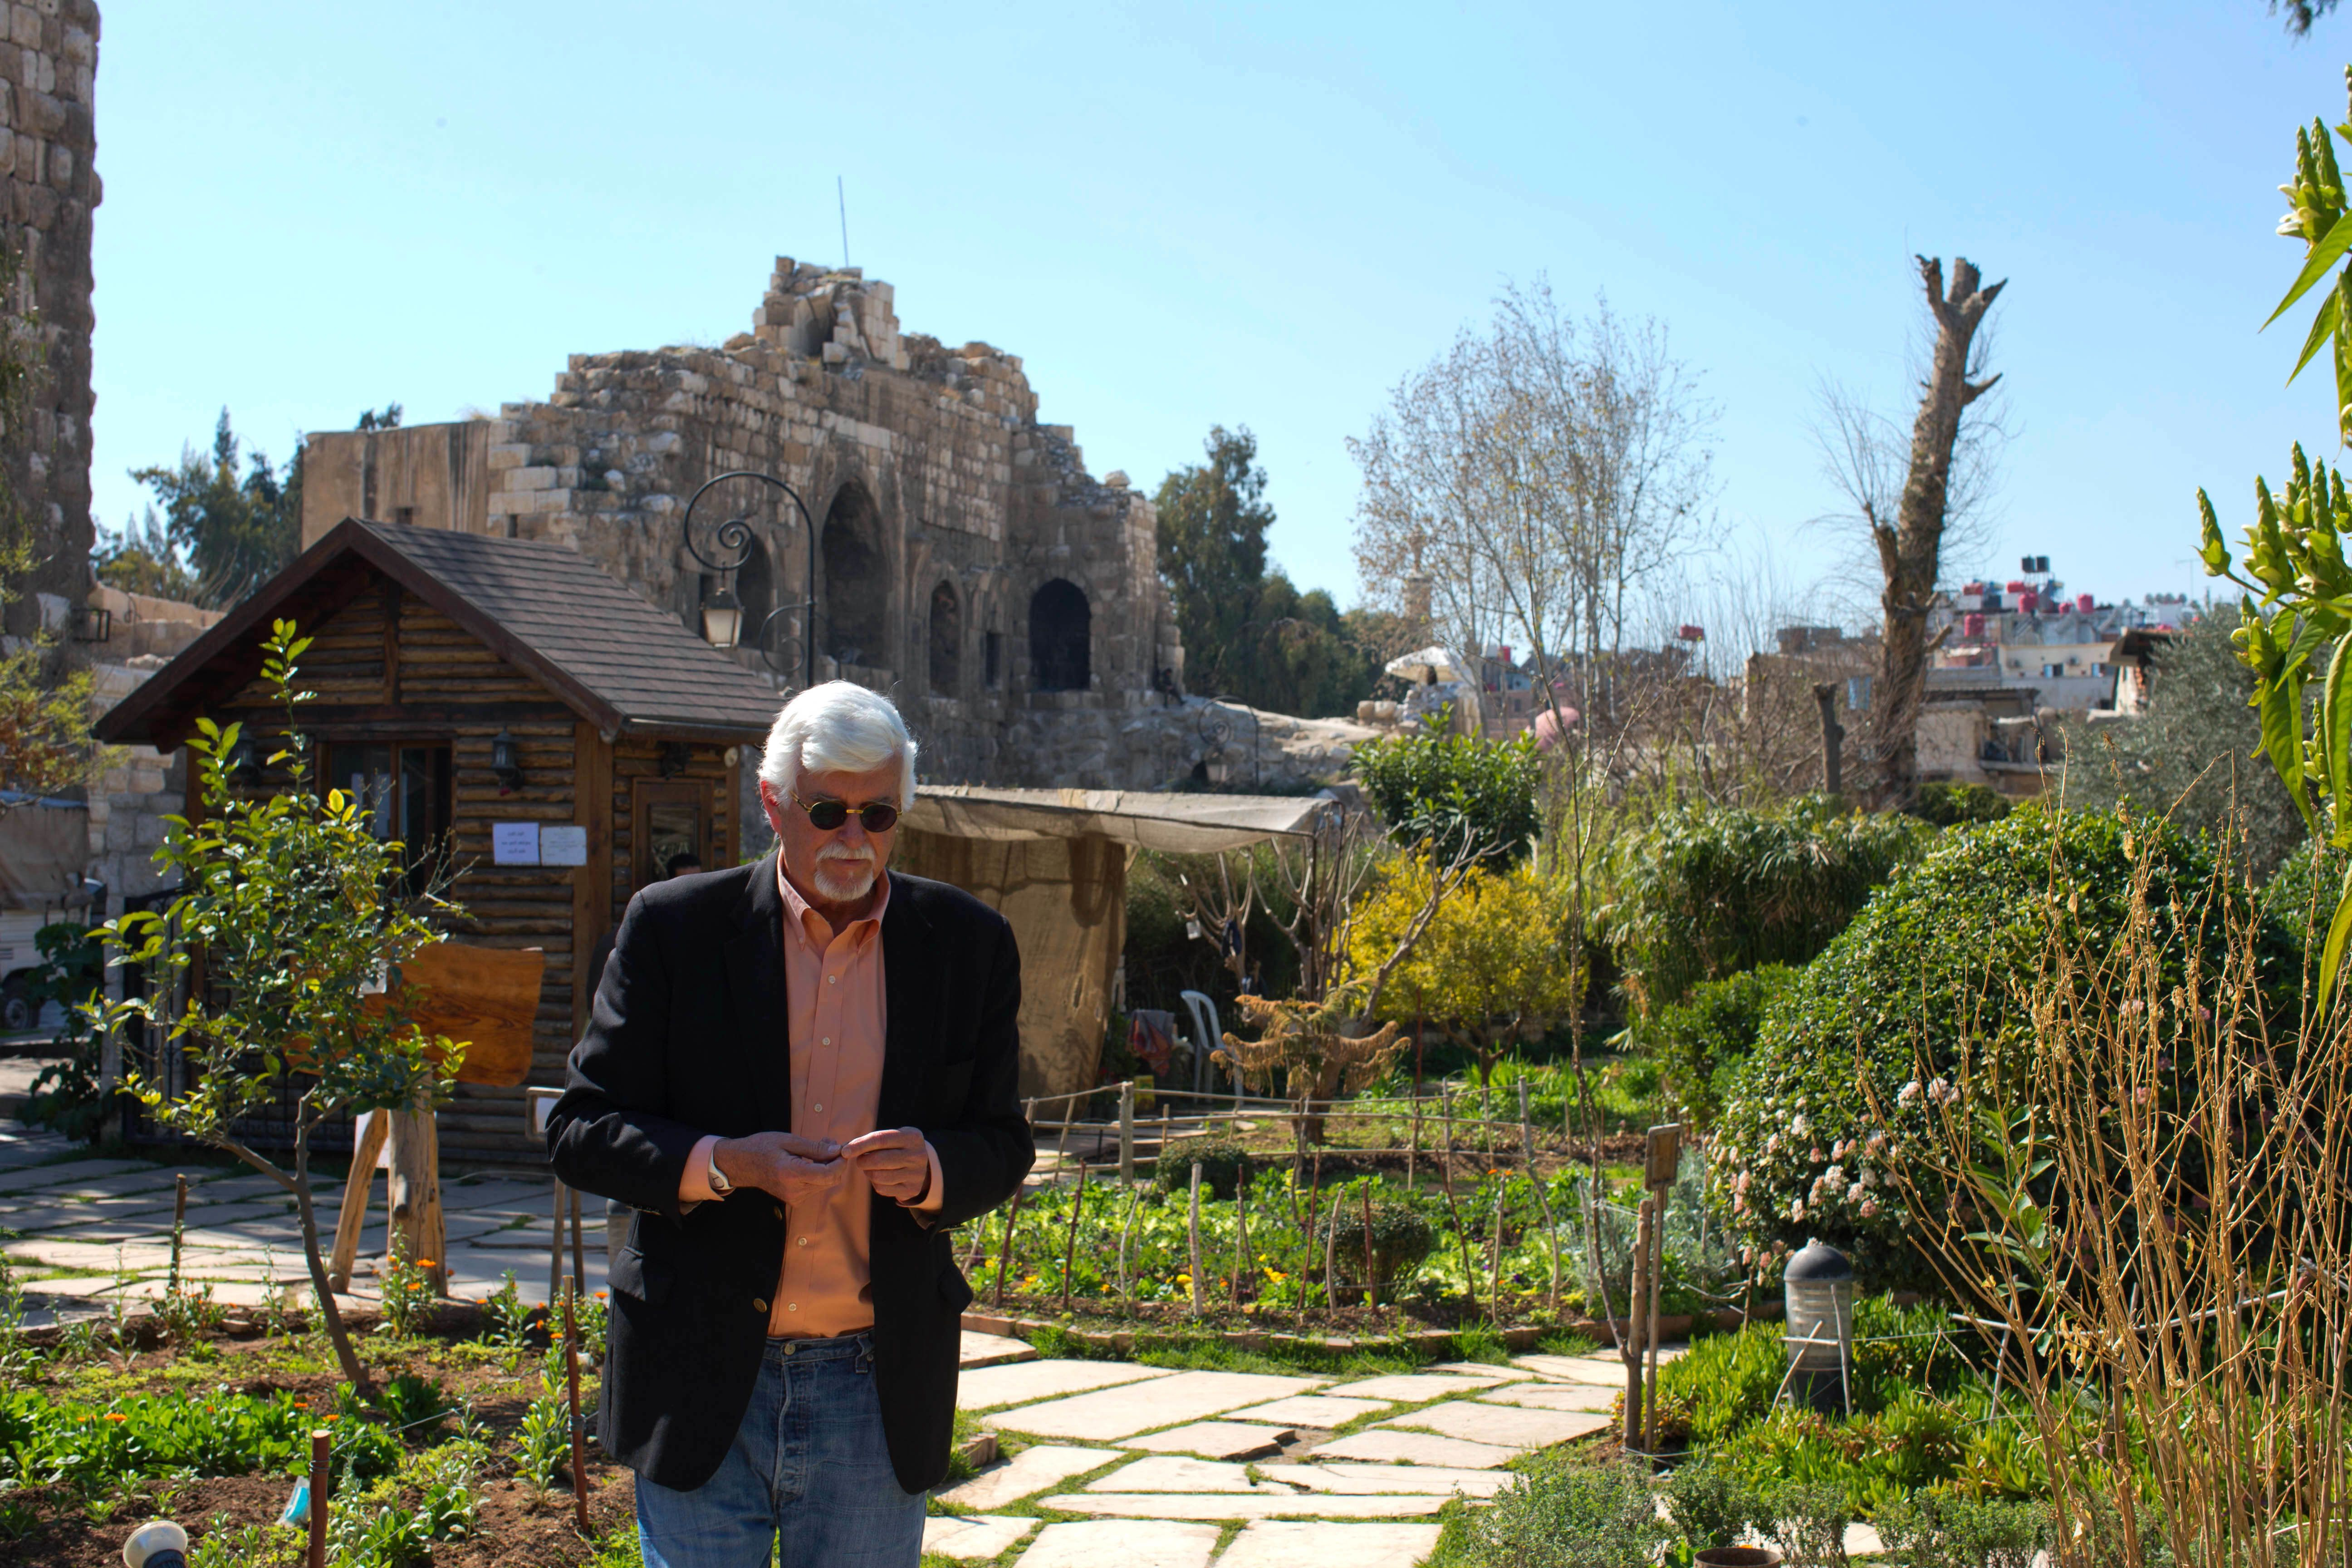 In this picture taken Monday, Feb. 29, 2016, Thomas Webber walks in a garden next to the Citadel of Damascus, Syria. Webber, an American who was born and raised in Orchard Park, New York, now has a part-time job in the English department of a local high school, where he shares his love of Charles Dickens with teenagers several times a week. The 71-year-old has no plans to leave Damascus, a city he has called home for more than four decades. (AP Photo/Hassan Ammar)